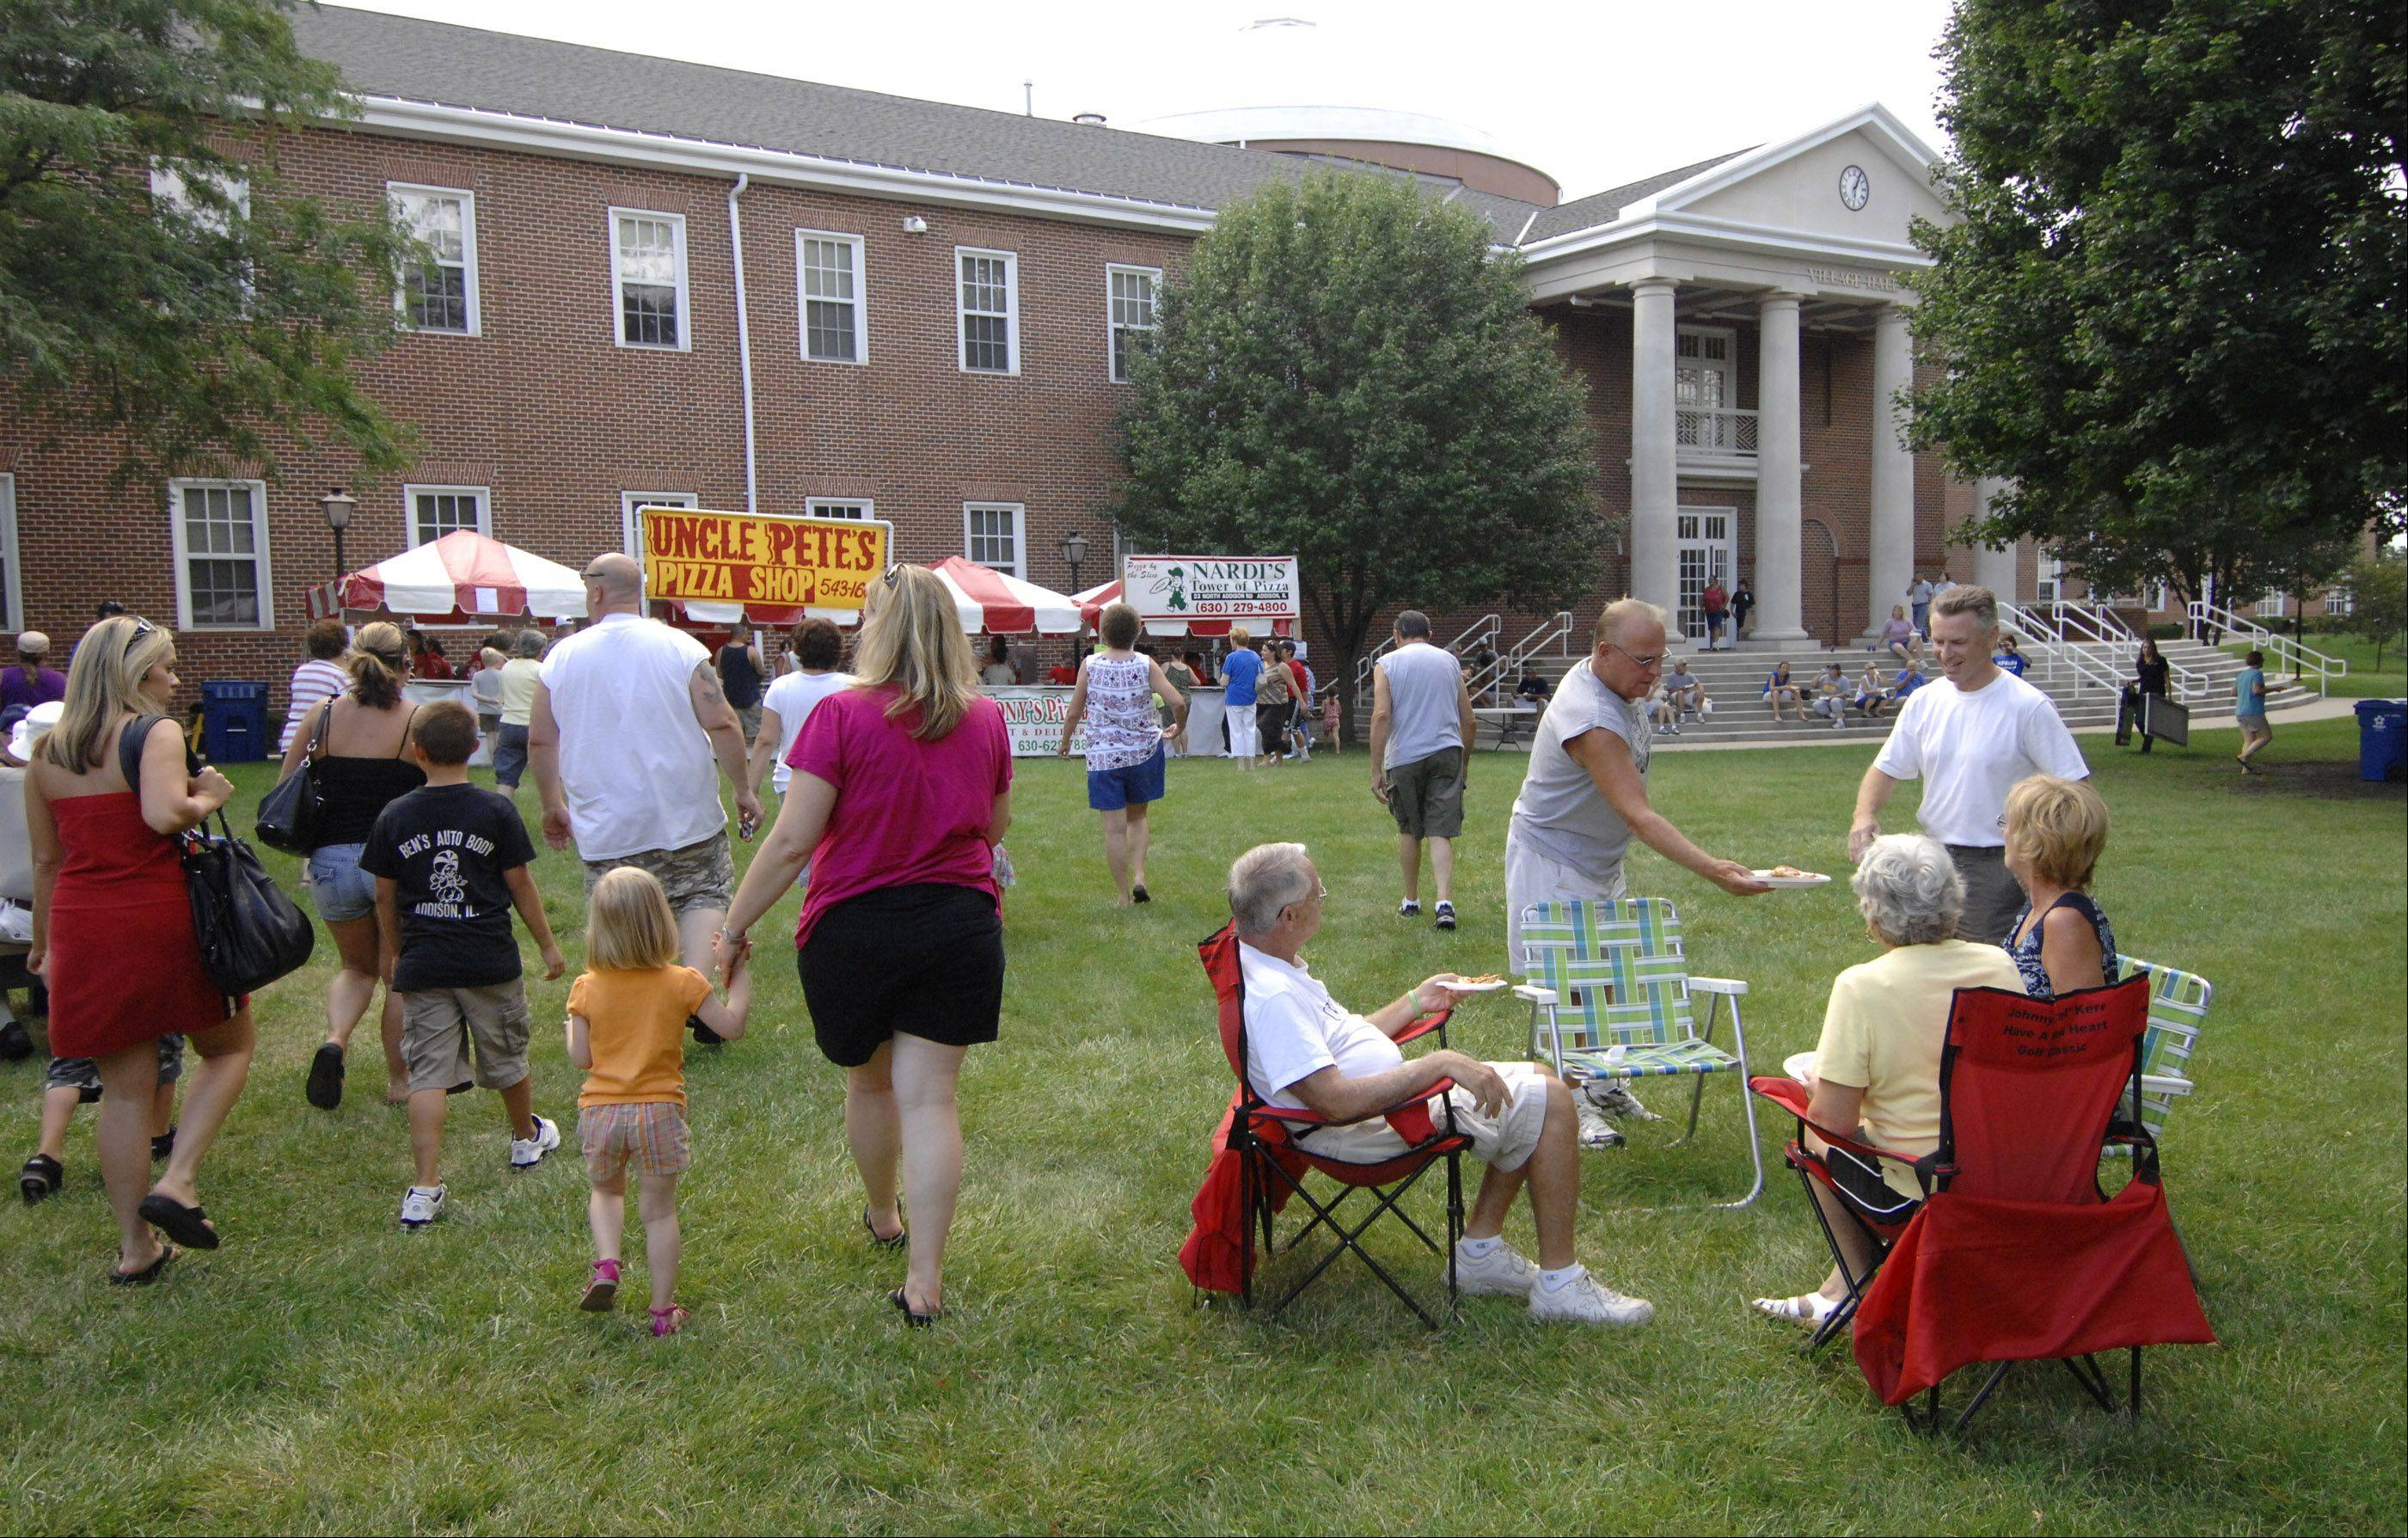 Addison residents enjoy a picnic atmosphere on the village hall lawn as part of National Night Out festivities.